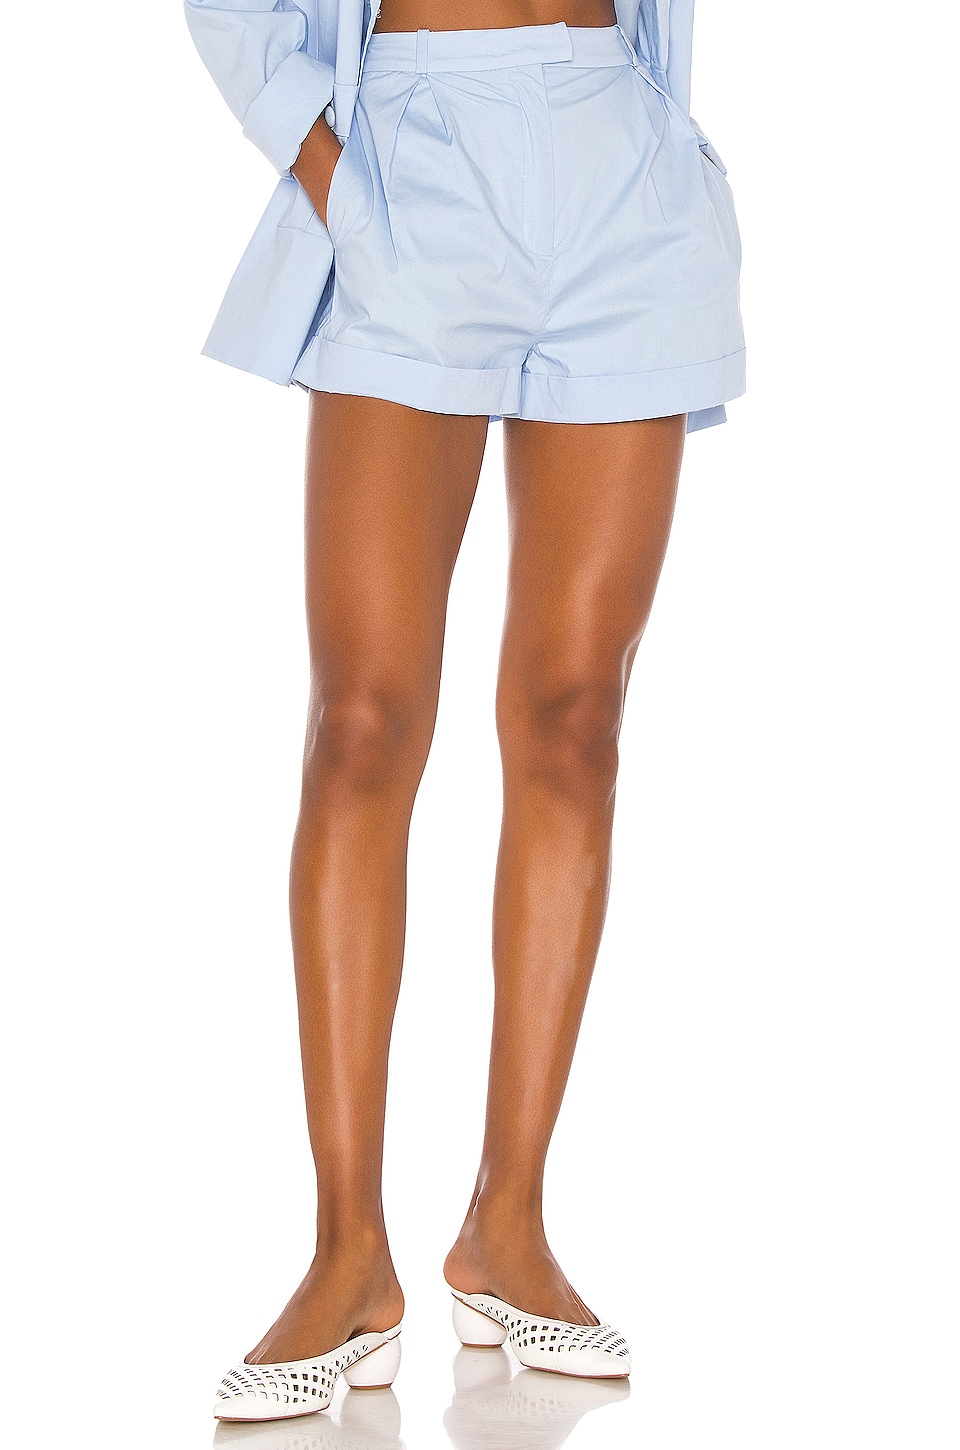 Song of Style Greta Short in Powder Blue